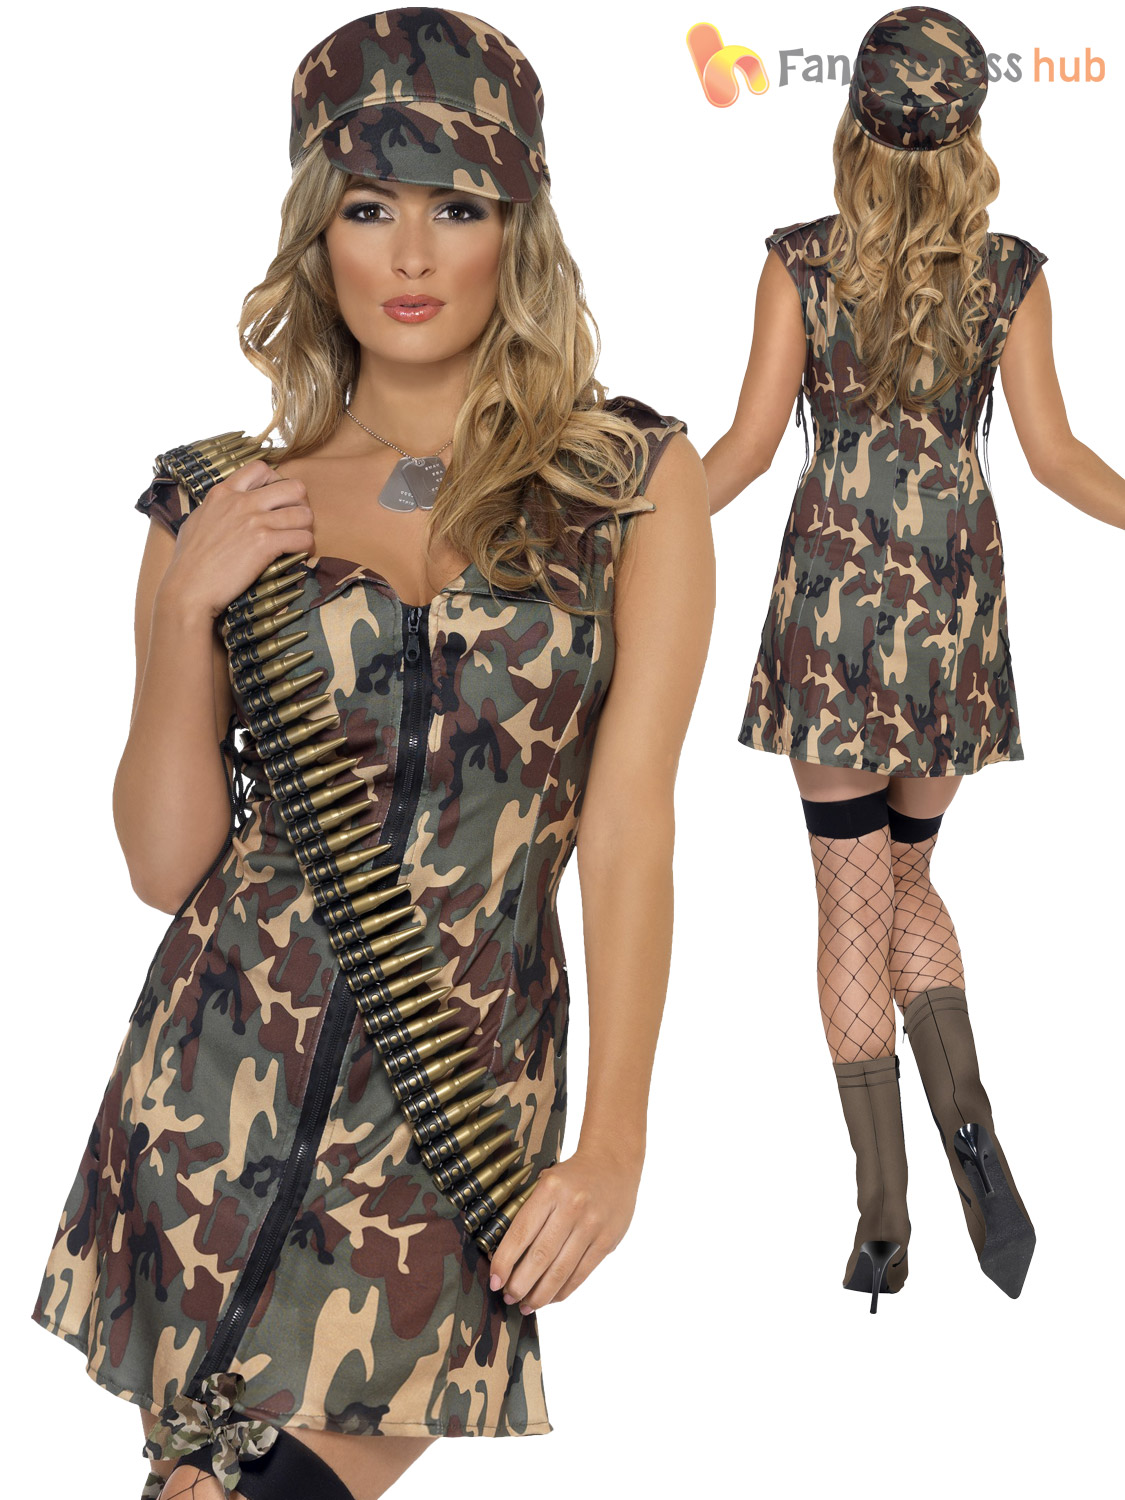 ladies fever army girl costume adult combat solider fancy dress camo military ebay. Black Bedroom Furniture Sets. Home Design Ideas